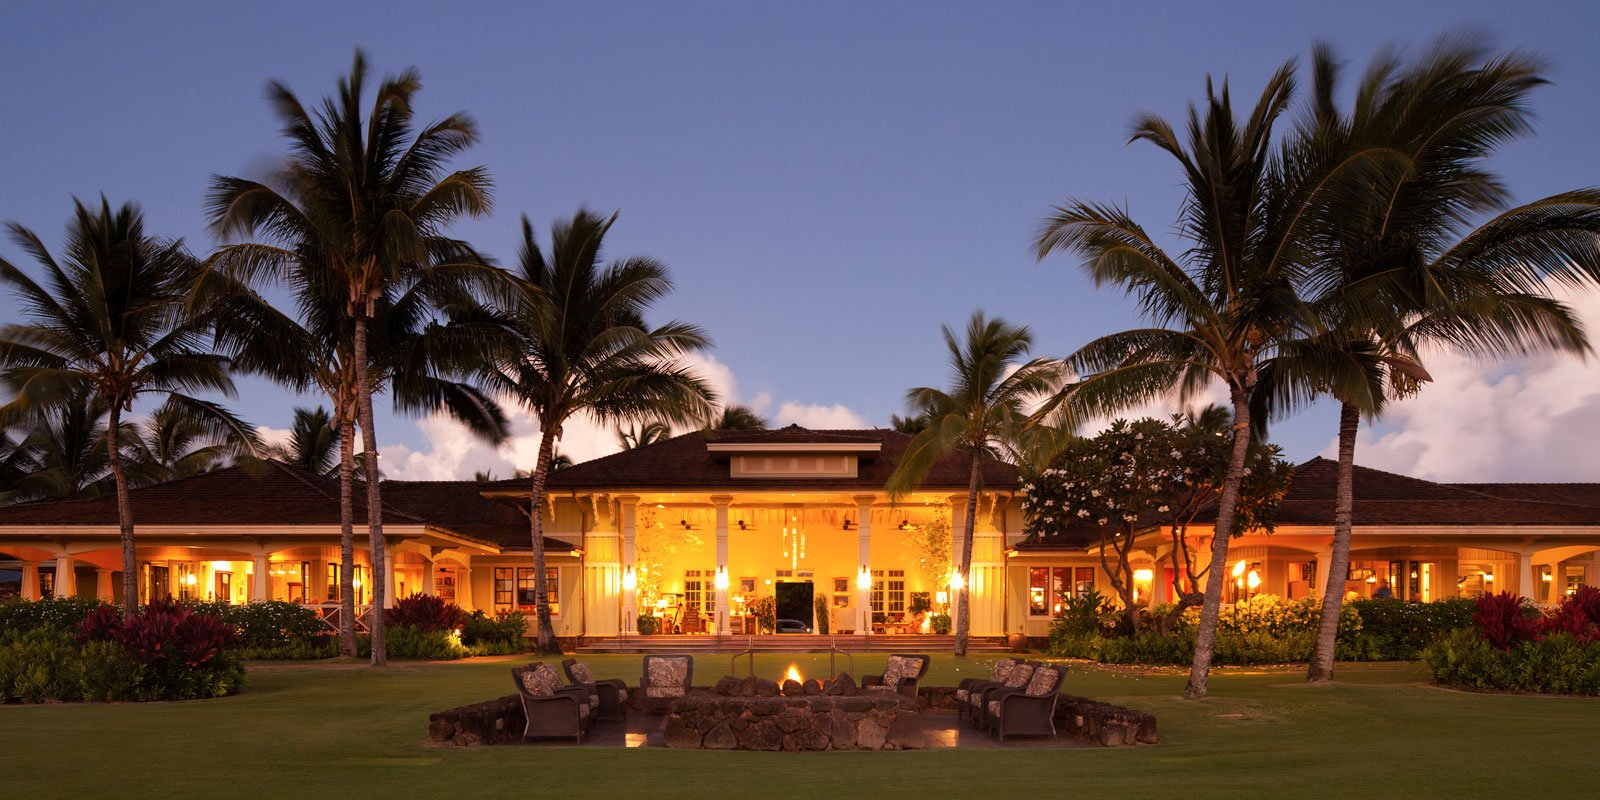 The Kukuiula Plantation House lawn at evening time